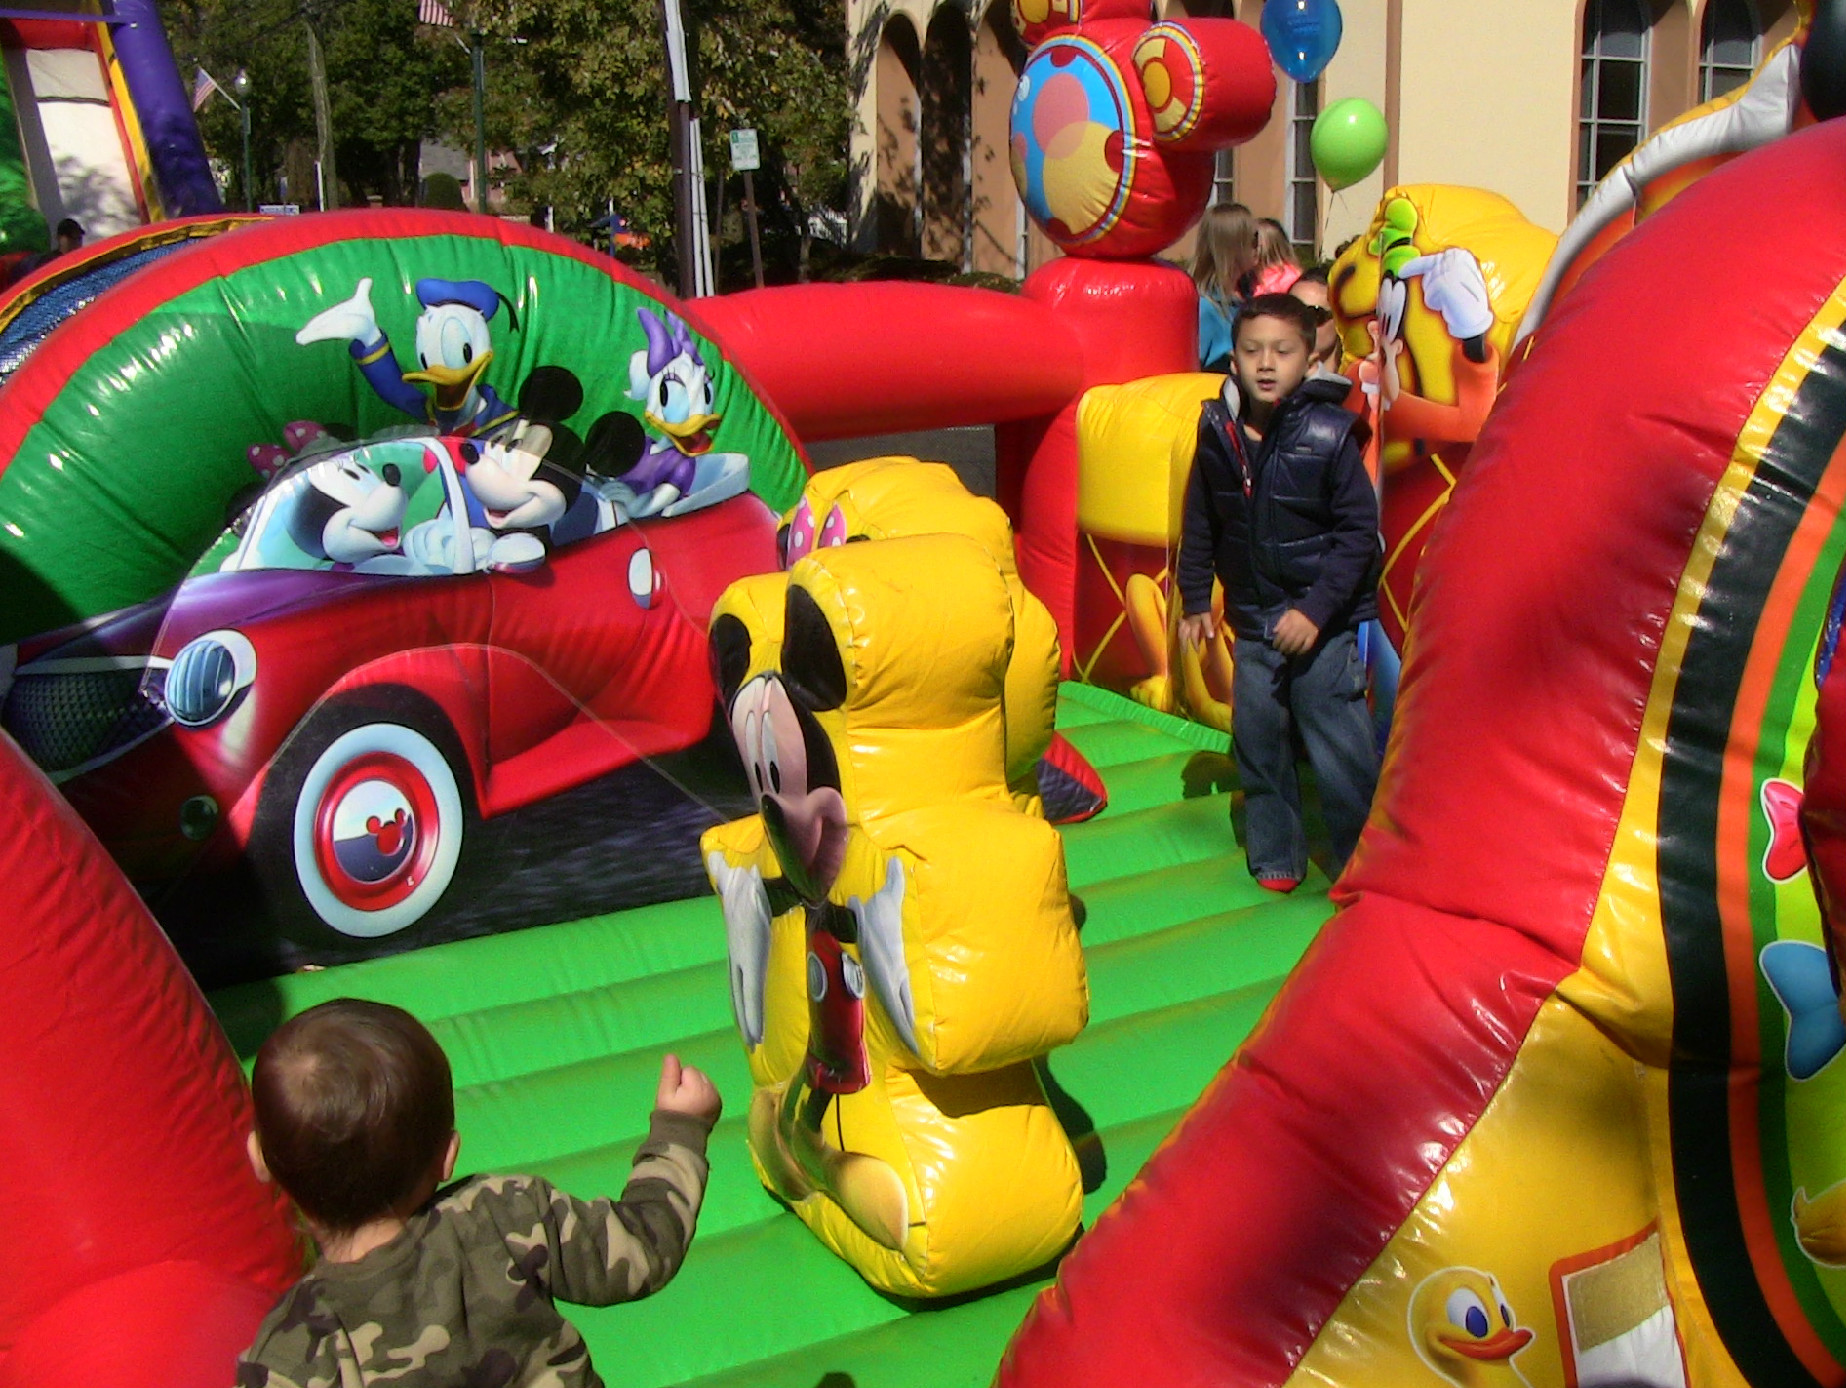 159e2d4ad25cb28805fb_Bouncy_House.jpg